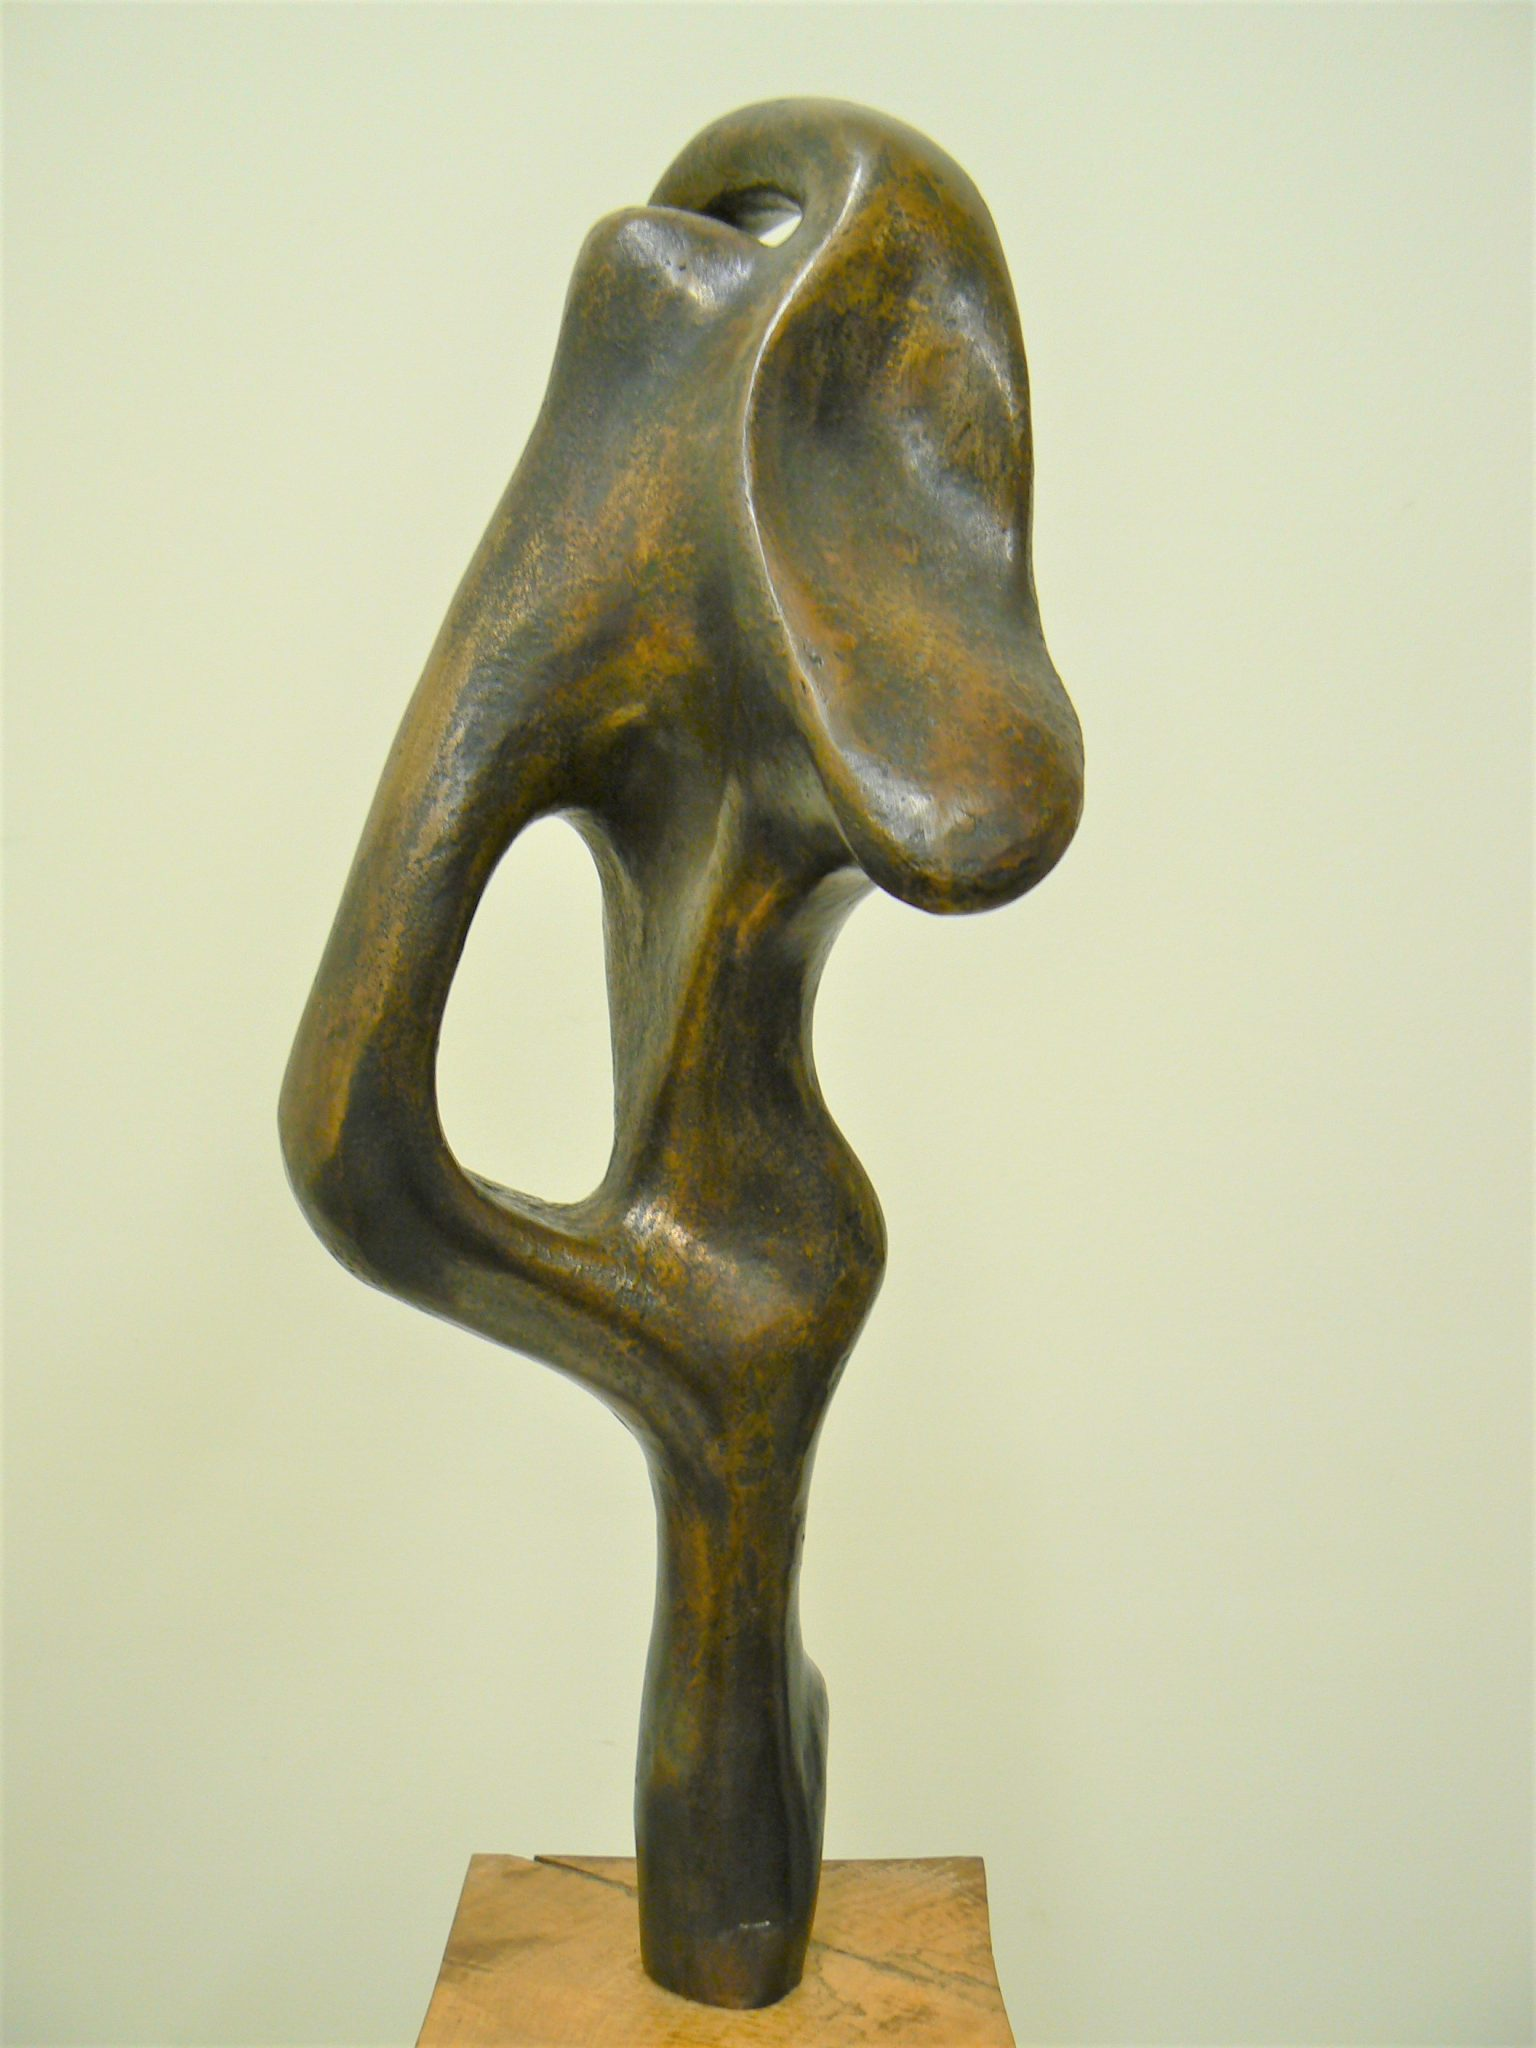 Two on One Point, cast bronze on pecan wood